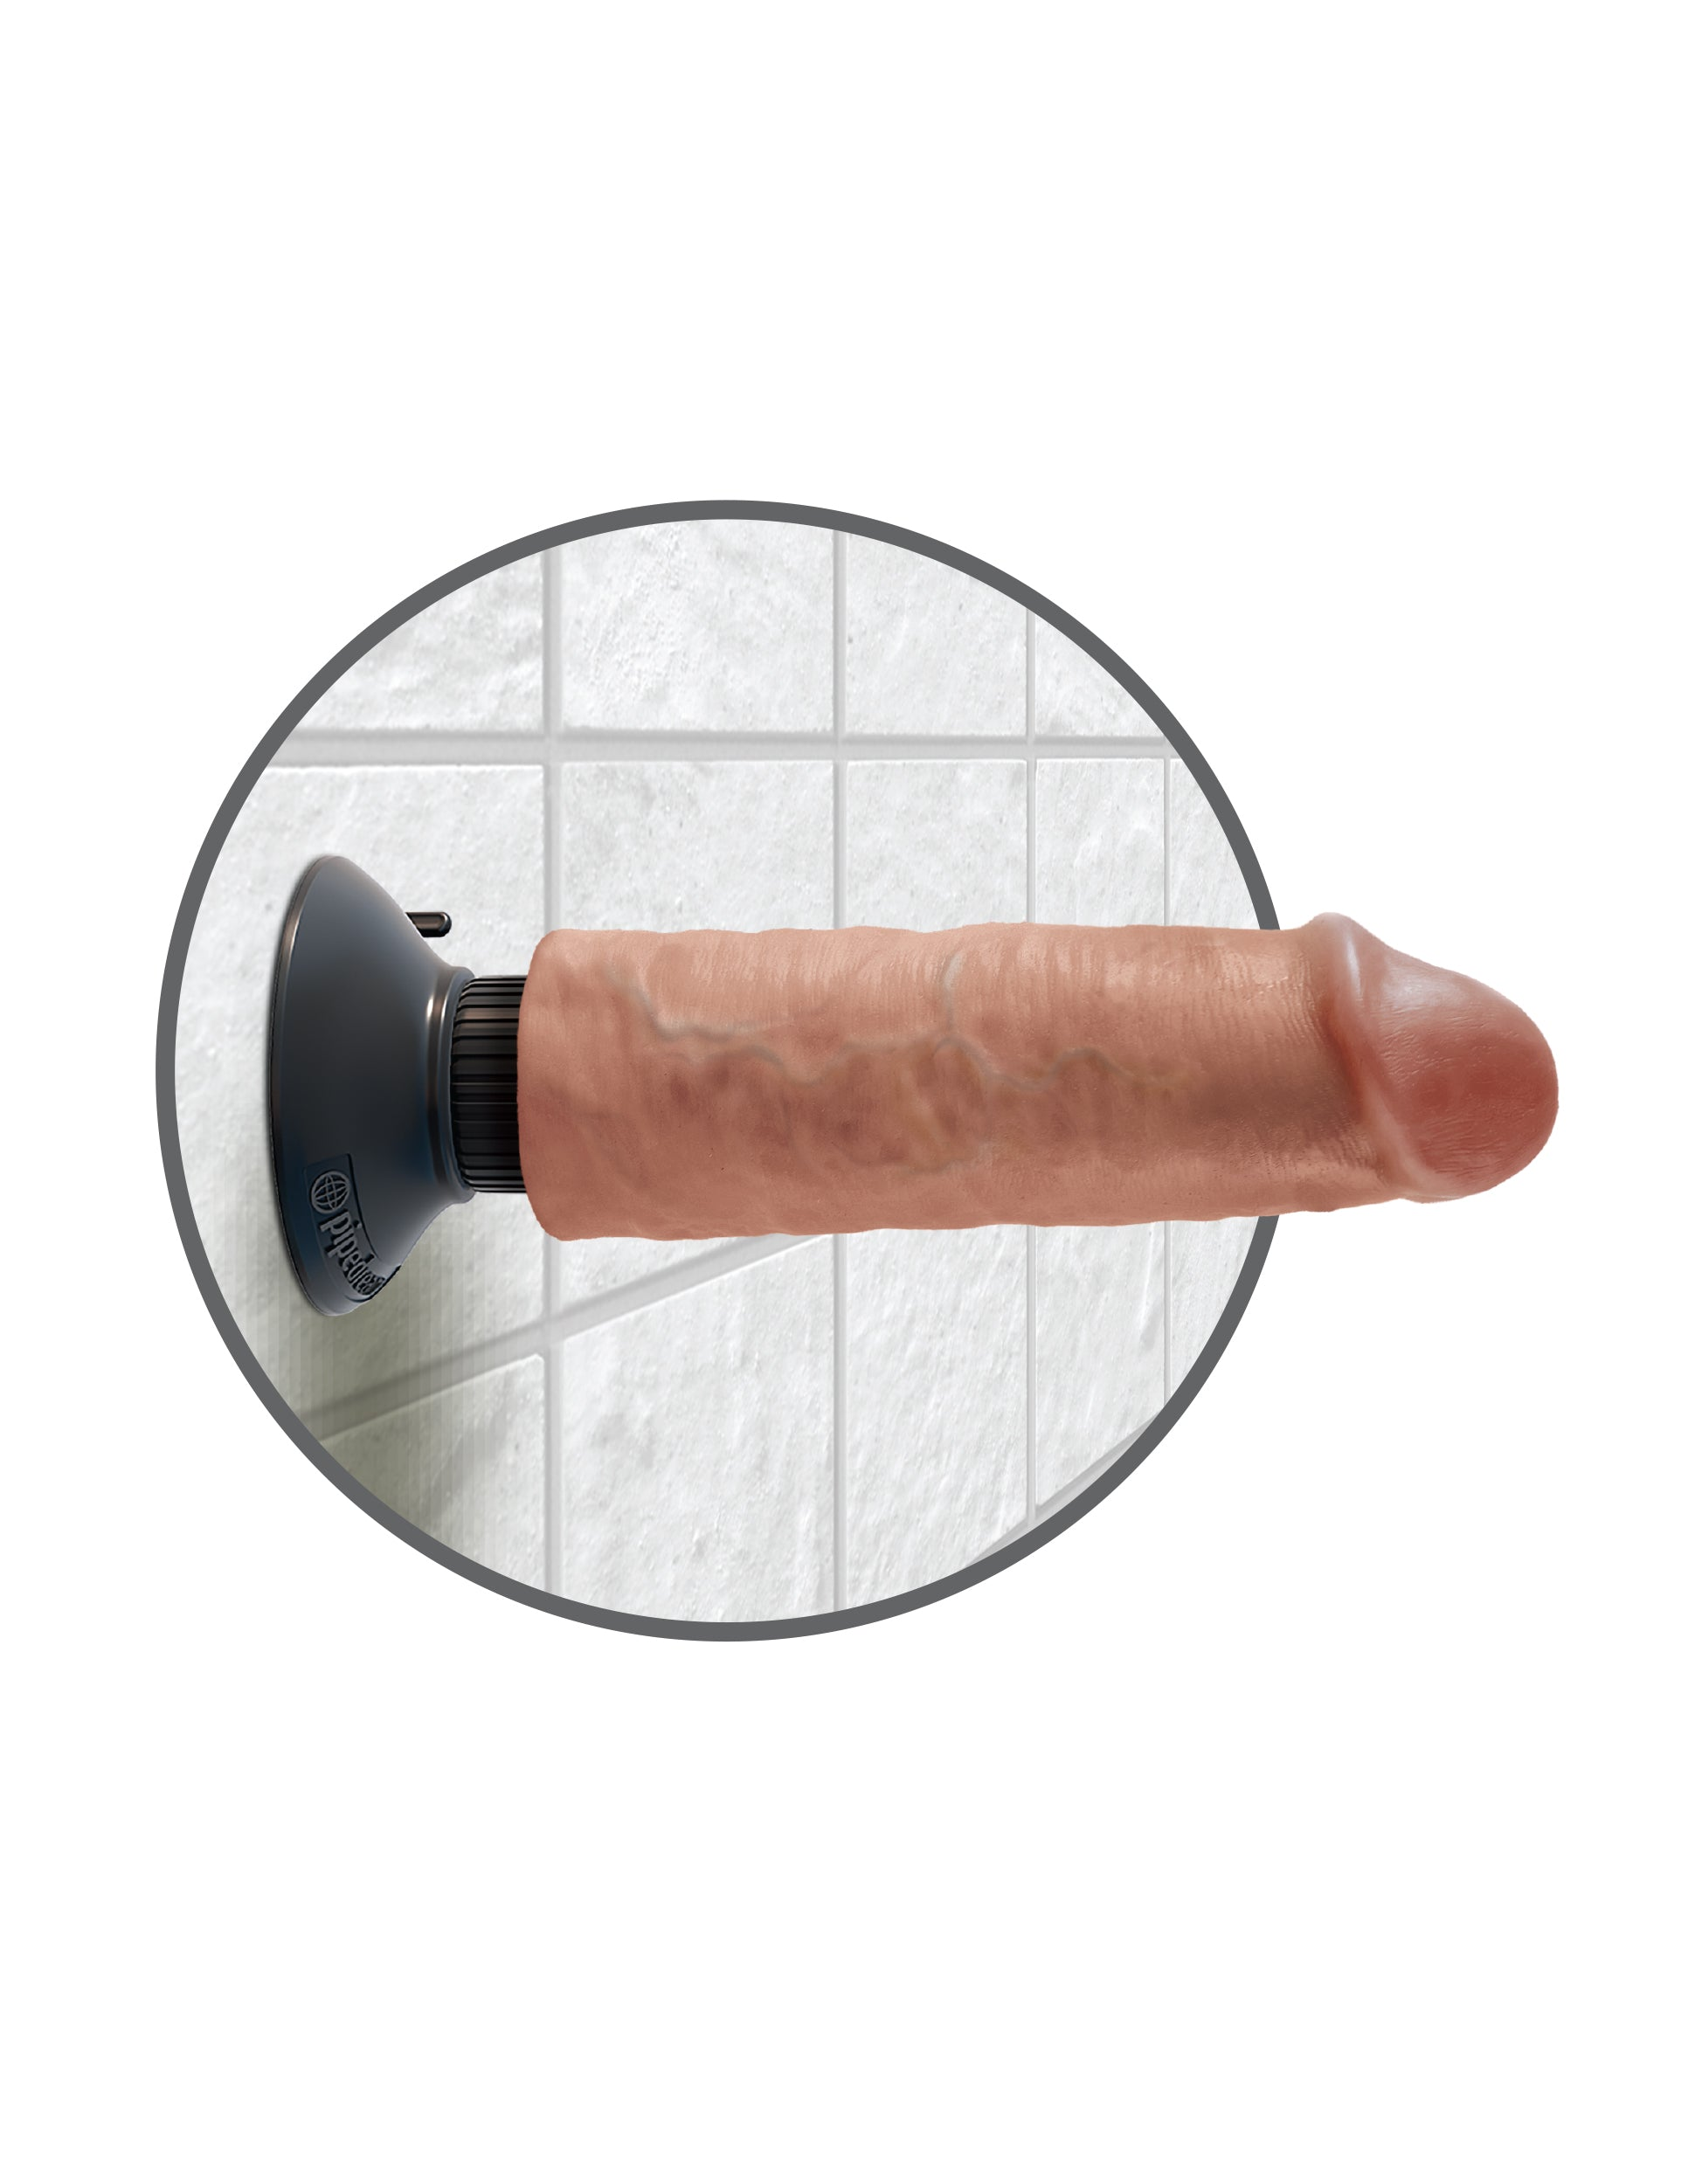 "King Cock 6"" Vibrating Suction Dong"